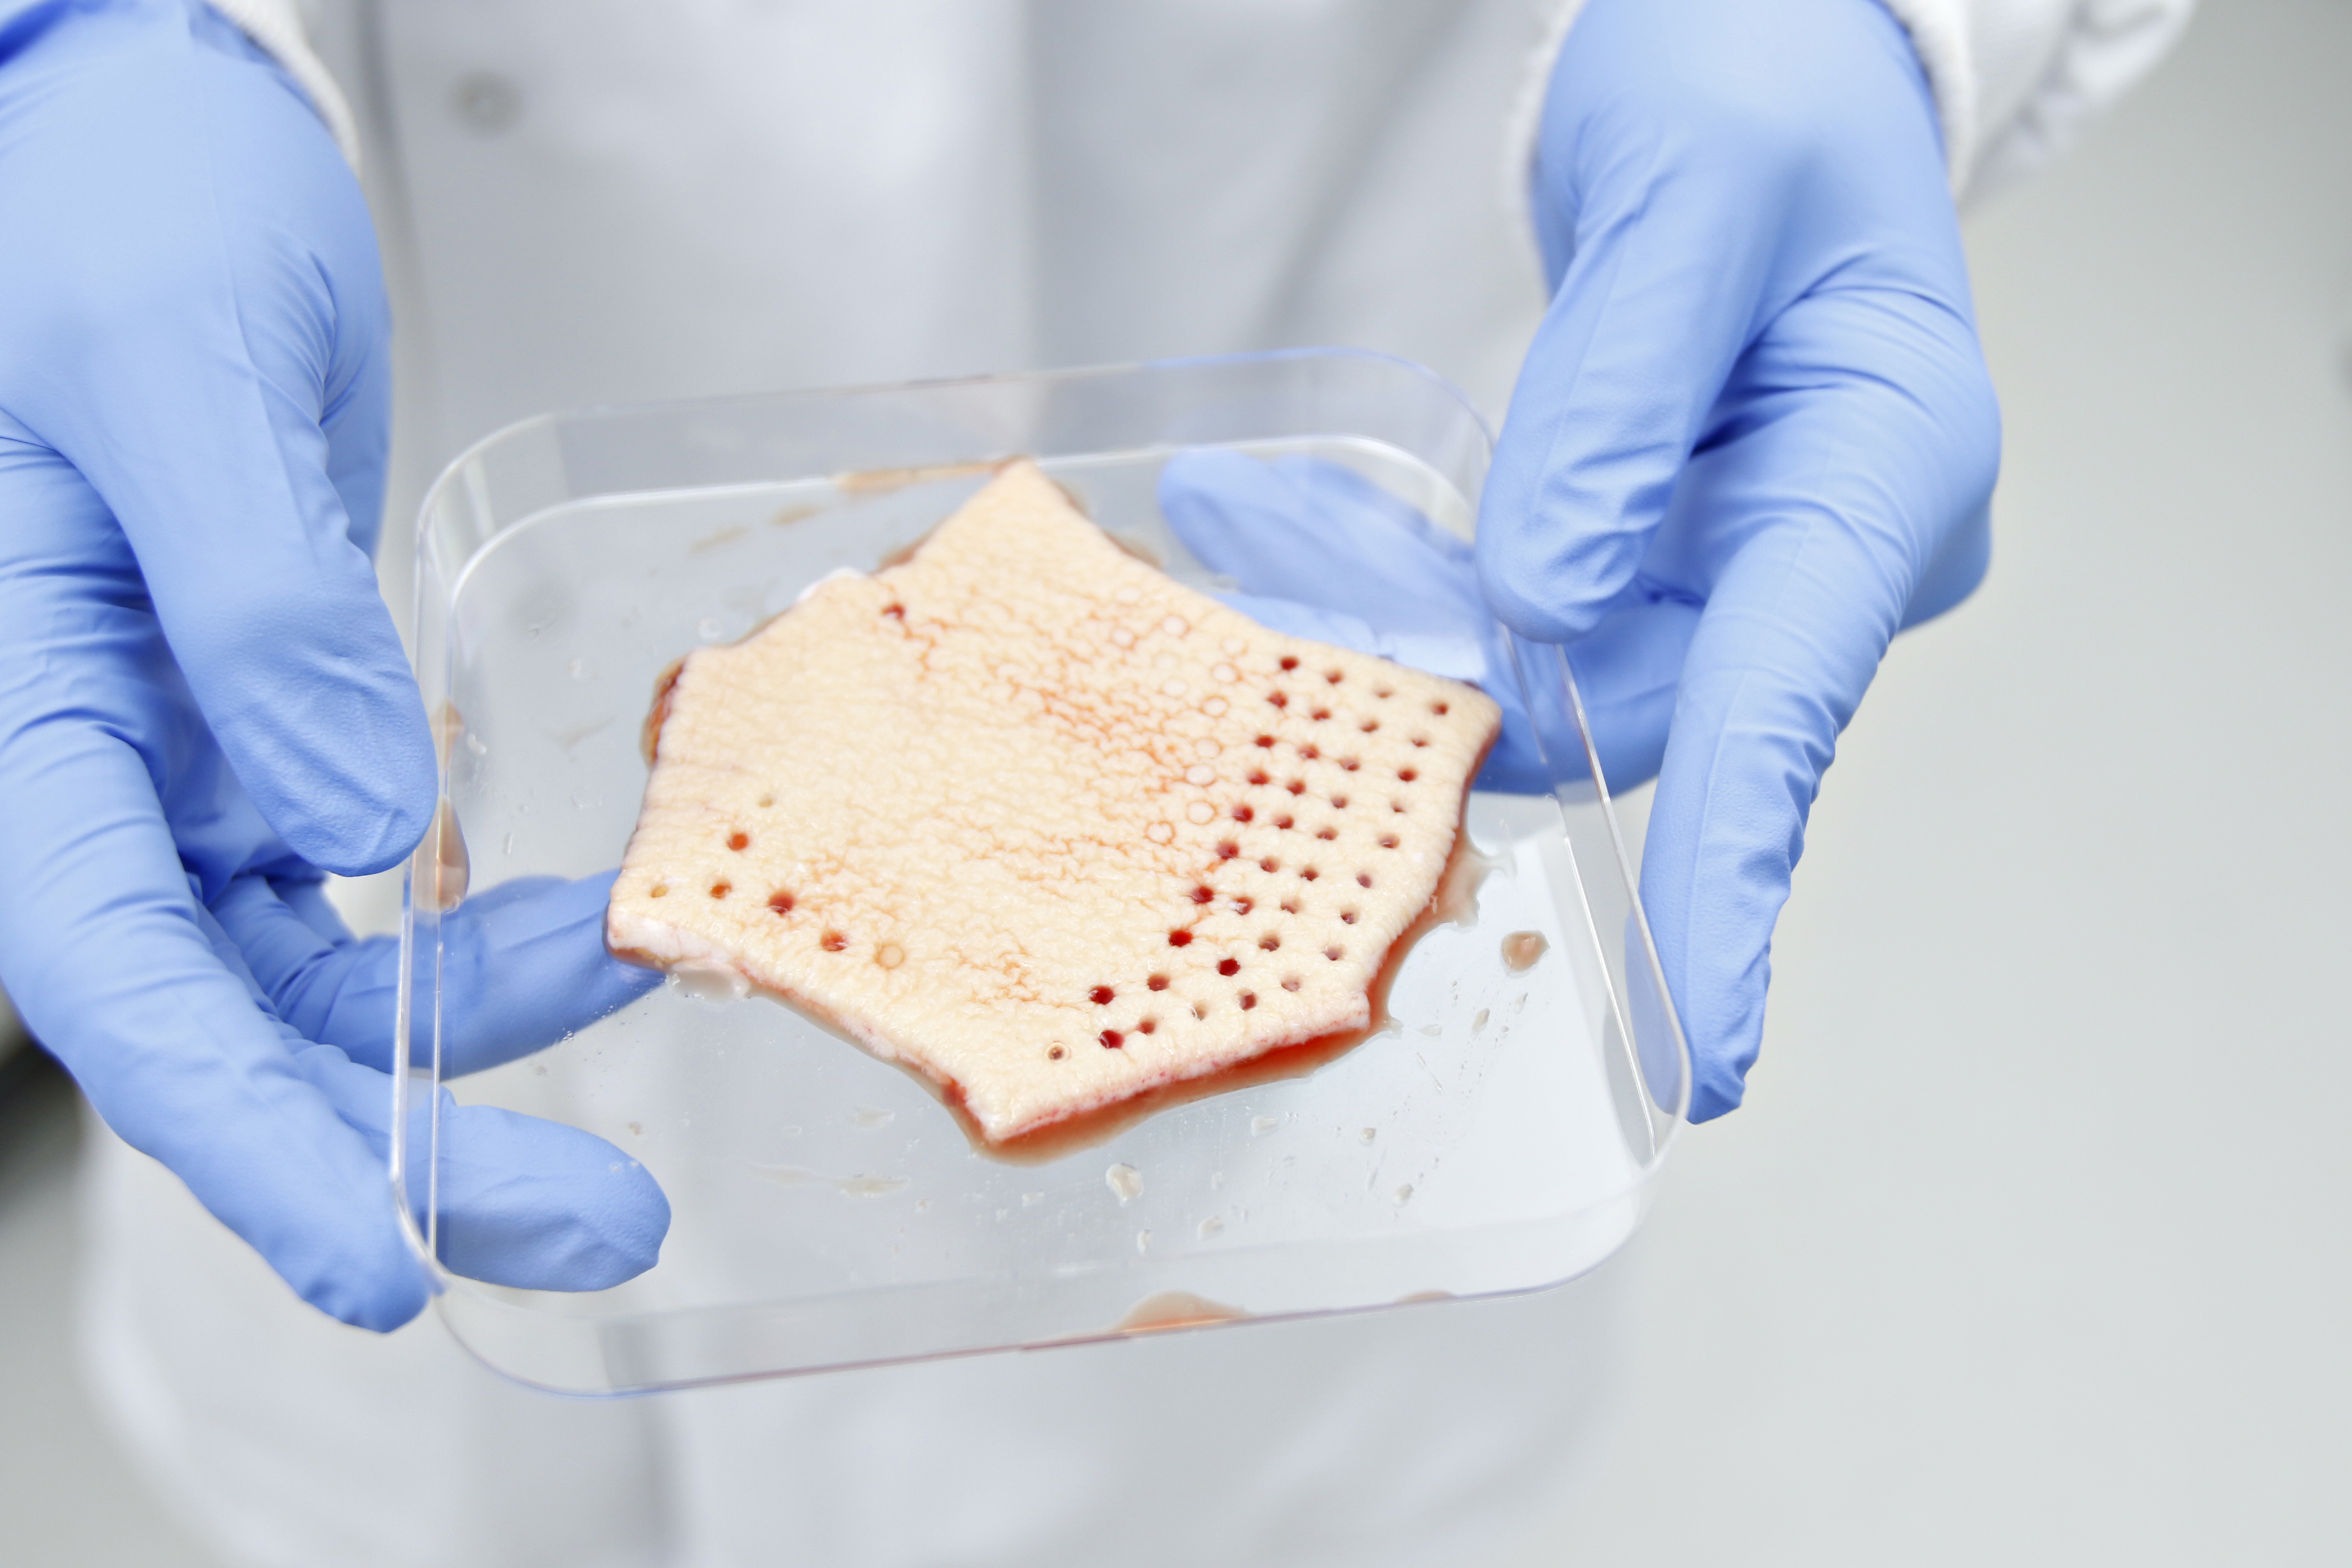 What is Human Tissue Testing?